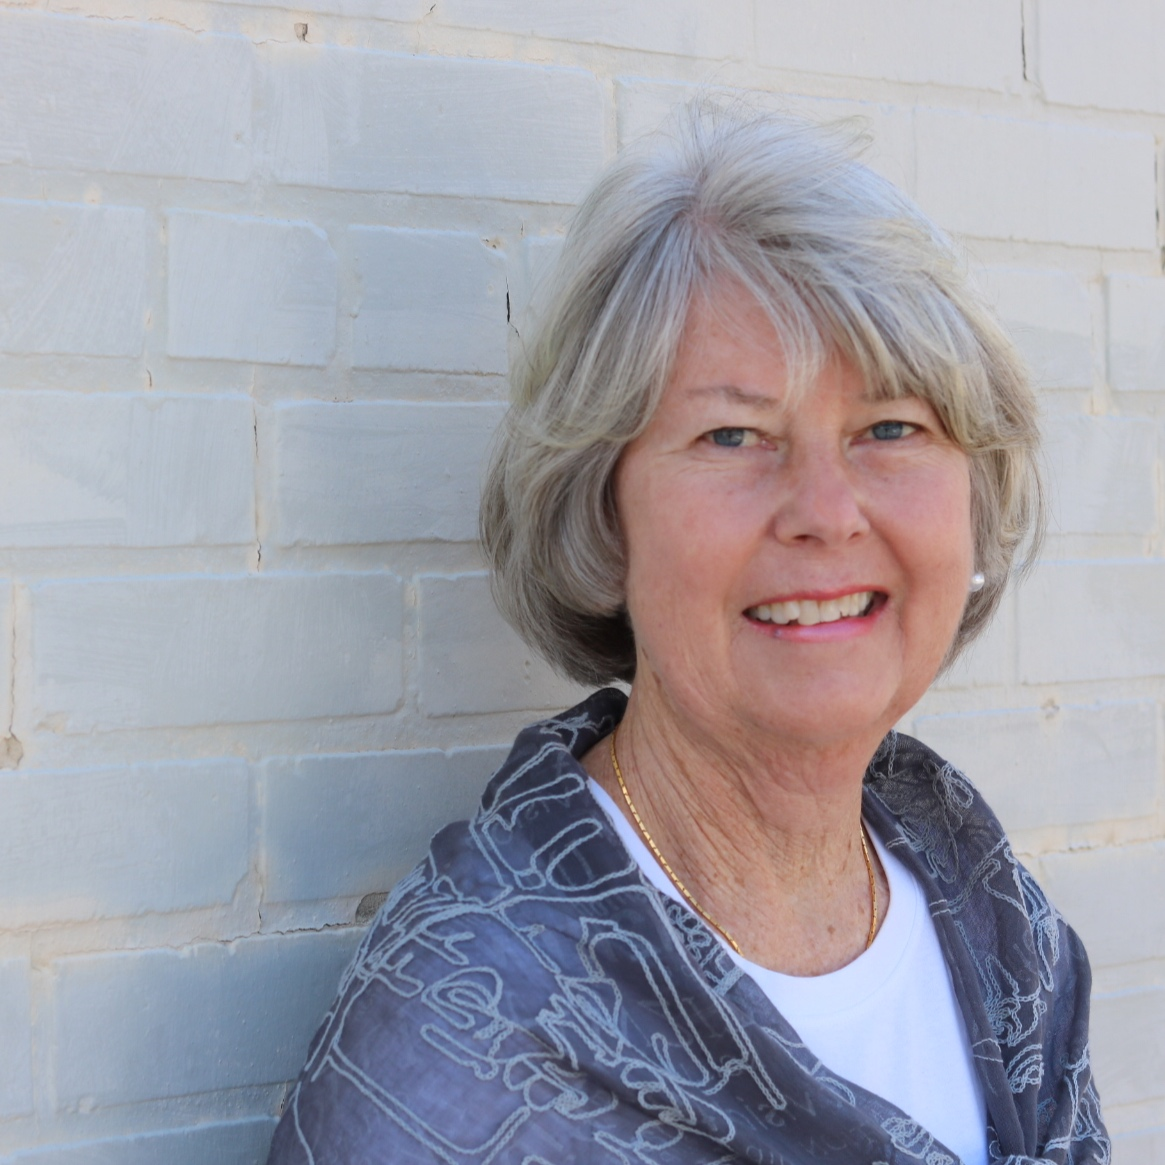 Debbie Taylor, Director of Outreach     debbie@westmarketchurch.org    Debbie Taylor is West Market's volunteer Director of Outreach. She loves to help WMC partner with local organizations to feed and house those in need and also to help individuals and churches around the world. Prior to working at WMC, Debbie was a registered nurse for 40+ years which has made her a perfect fit for the ministry of Outreach. She enjoys getting to personally know members of WMC and others in the community while working to positively influence the lives of those in need. In her spare time, she enjoys reading and playing tennis.